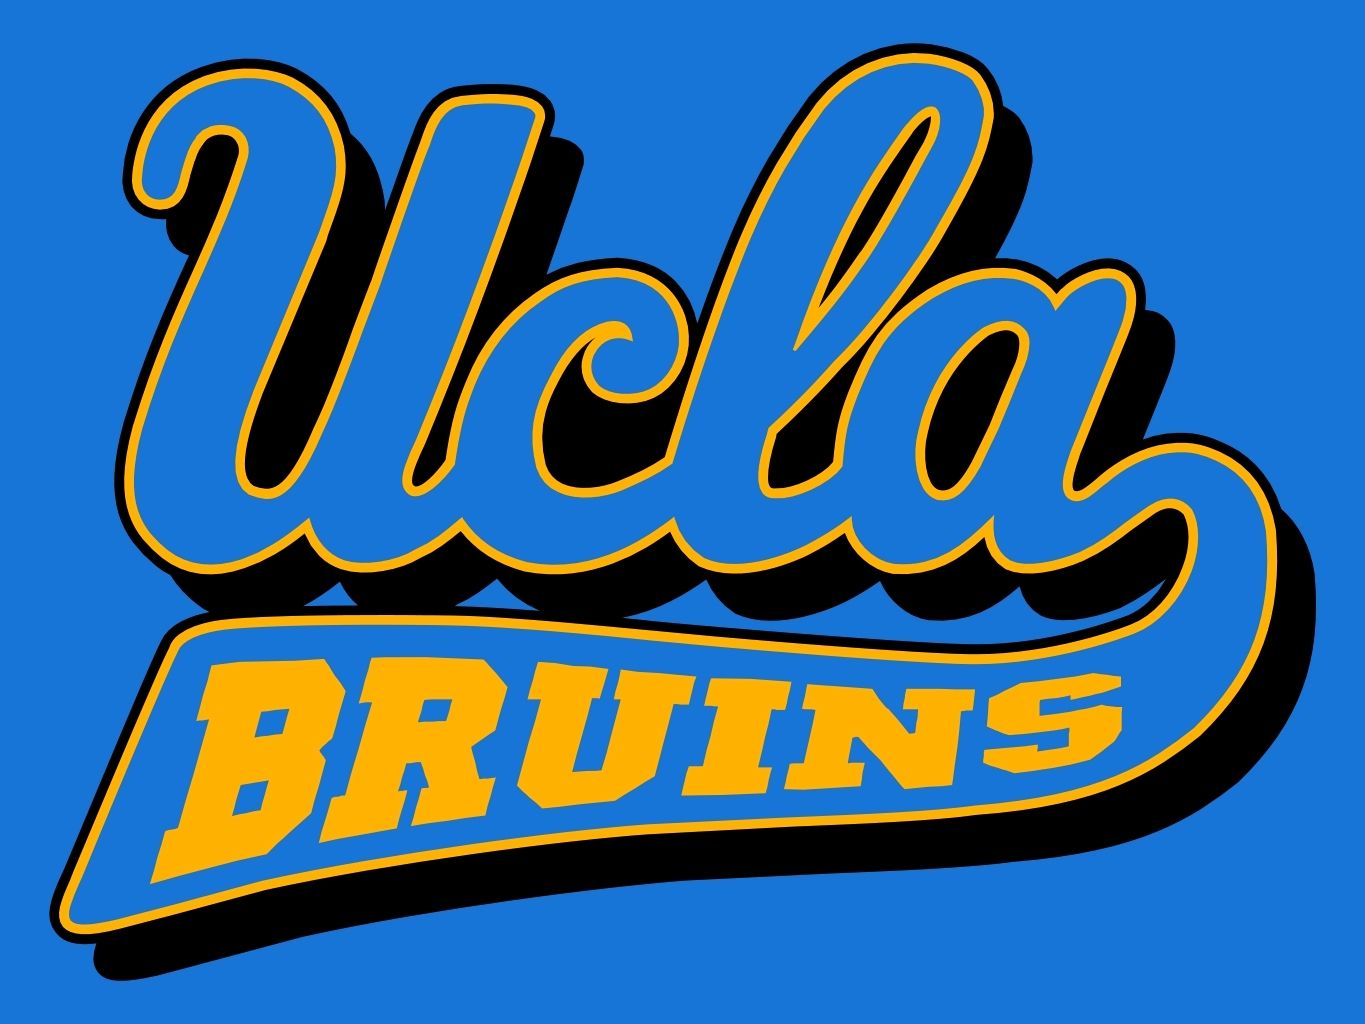 Nightmare Students Support Me Why Usa Treasury Federally Protected To Protect Student Loans Ucla Bruins Logo College Football Logos Ucla Bruins Basketball